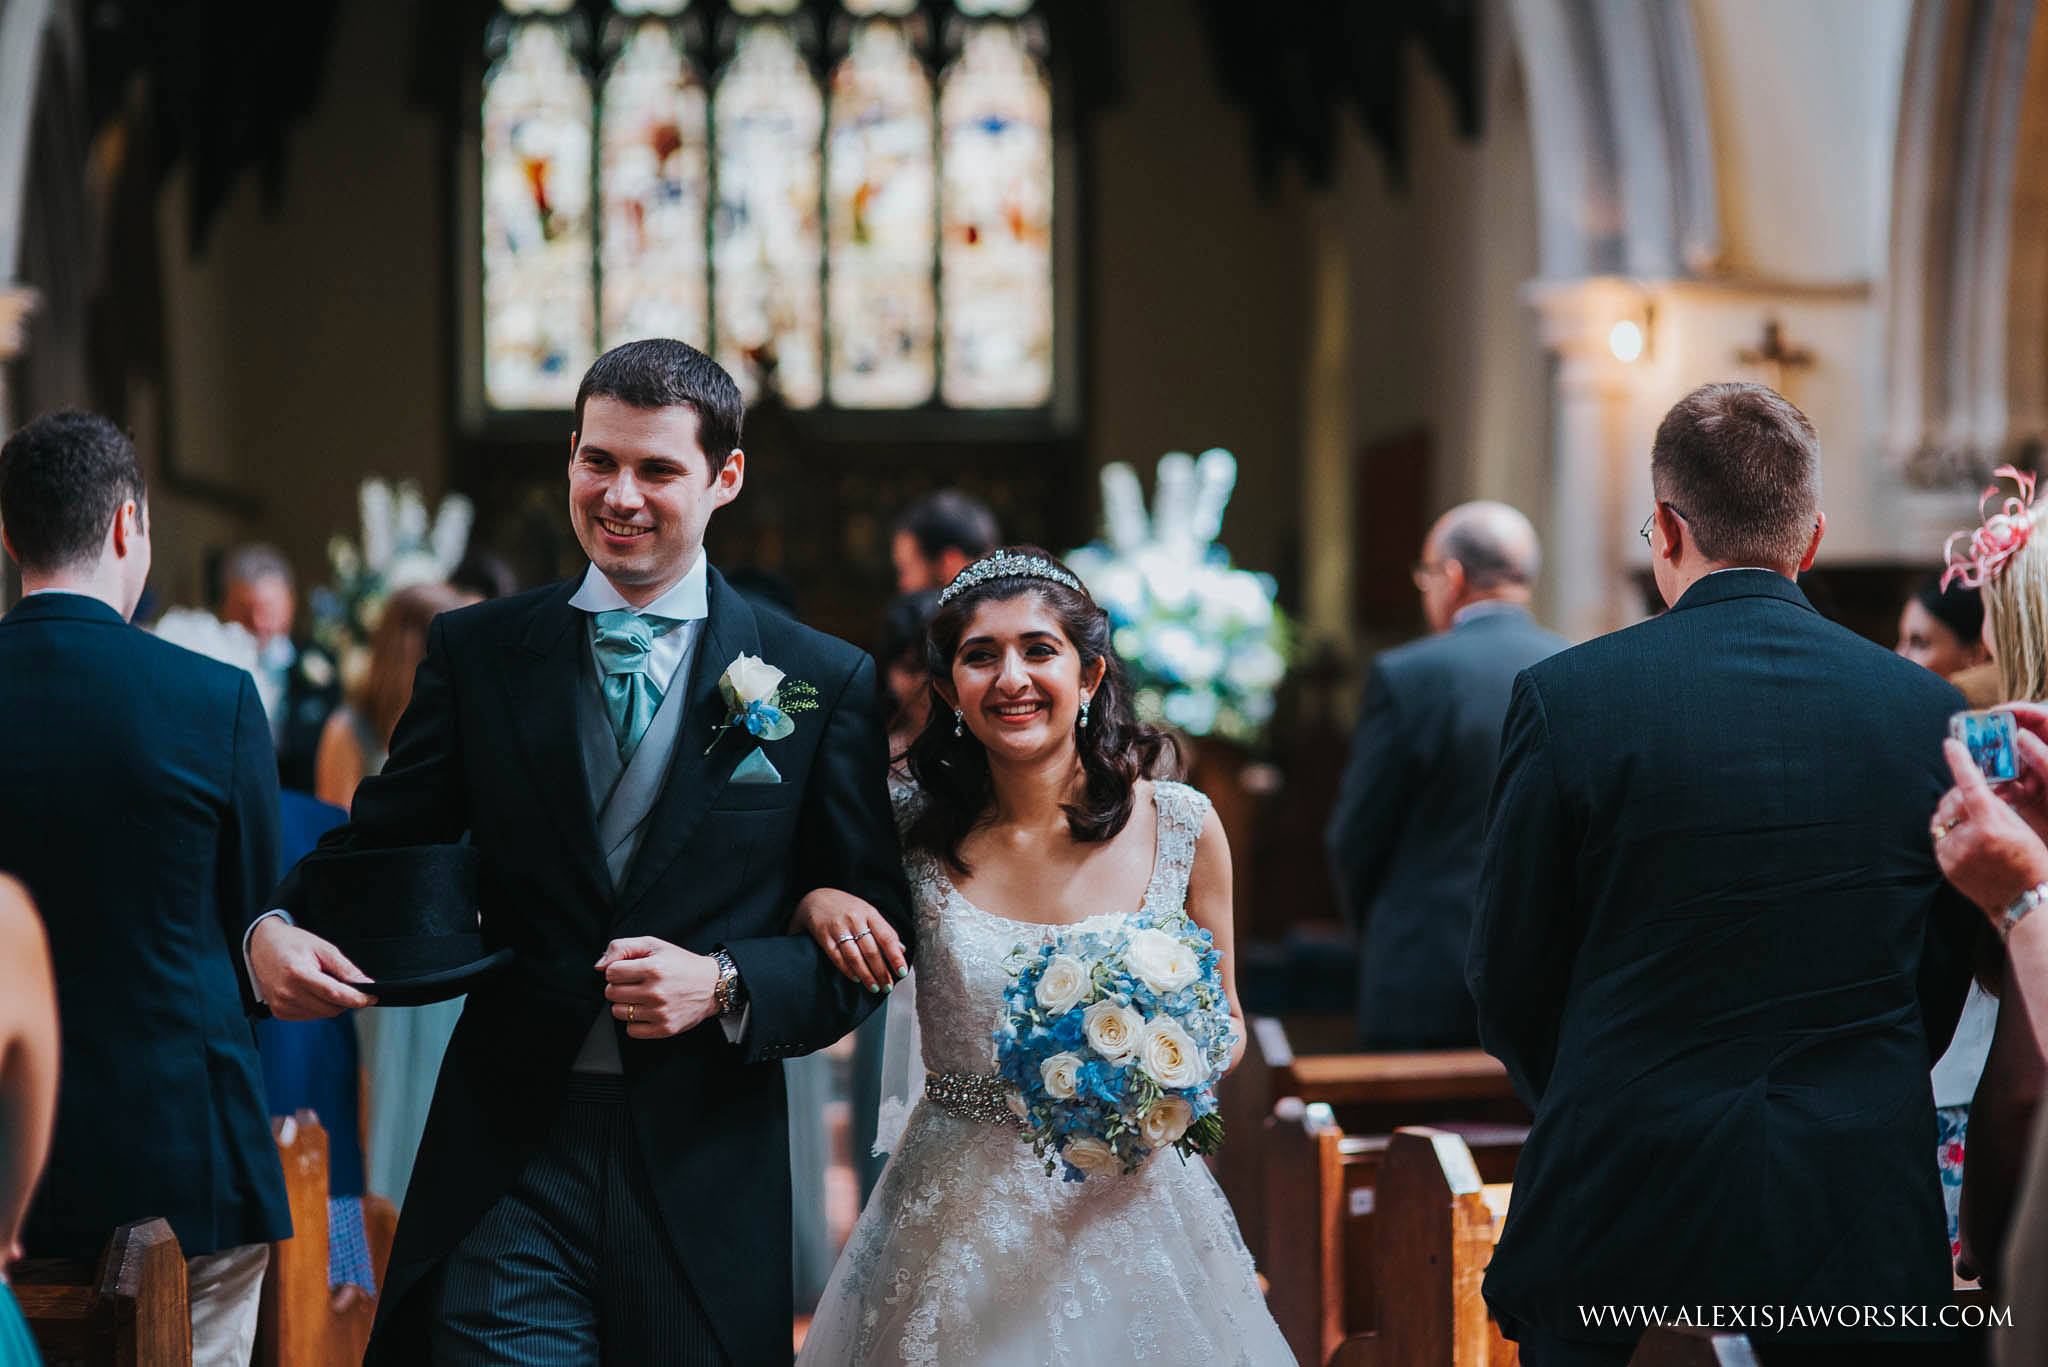 bride and groom smiling at guests